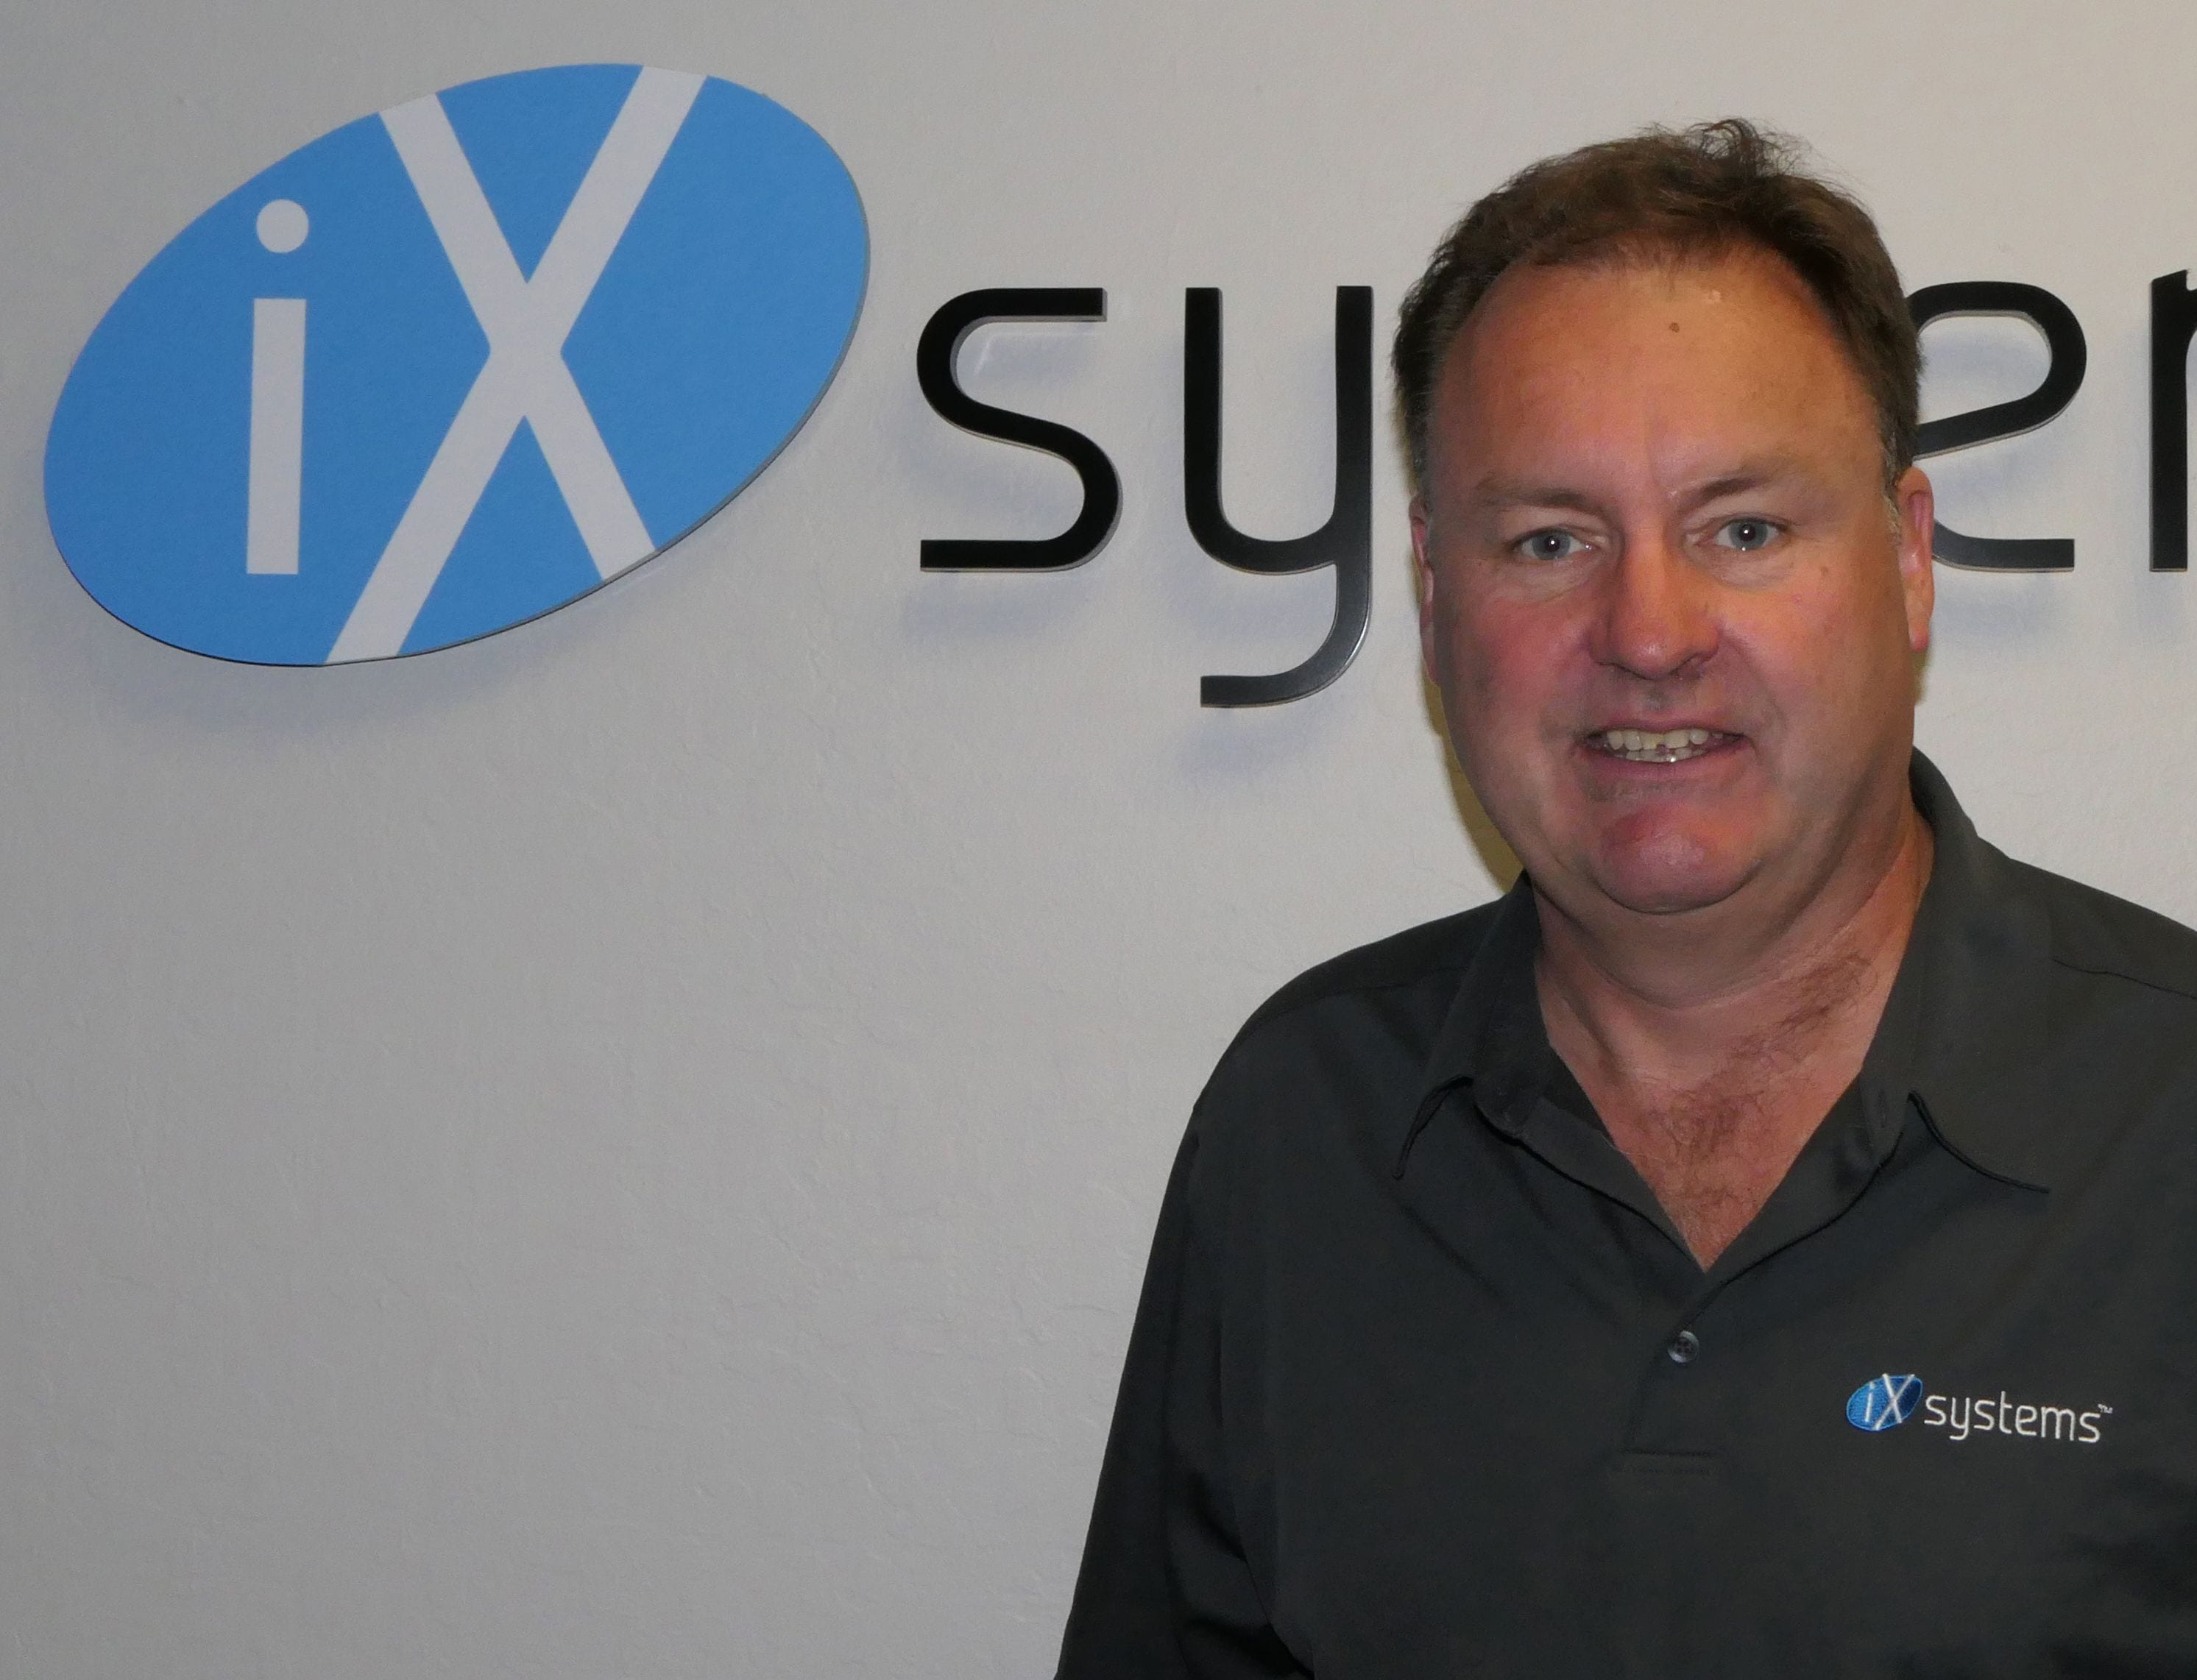 Silicon Valley Veteran Morgan Littlewood Joins iXsystems as Senior Vice President, Product Management and Business Development